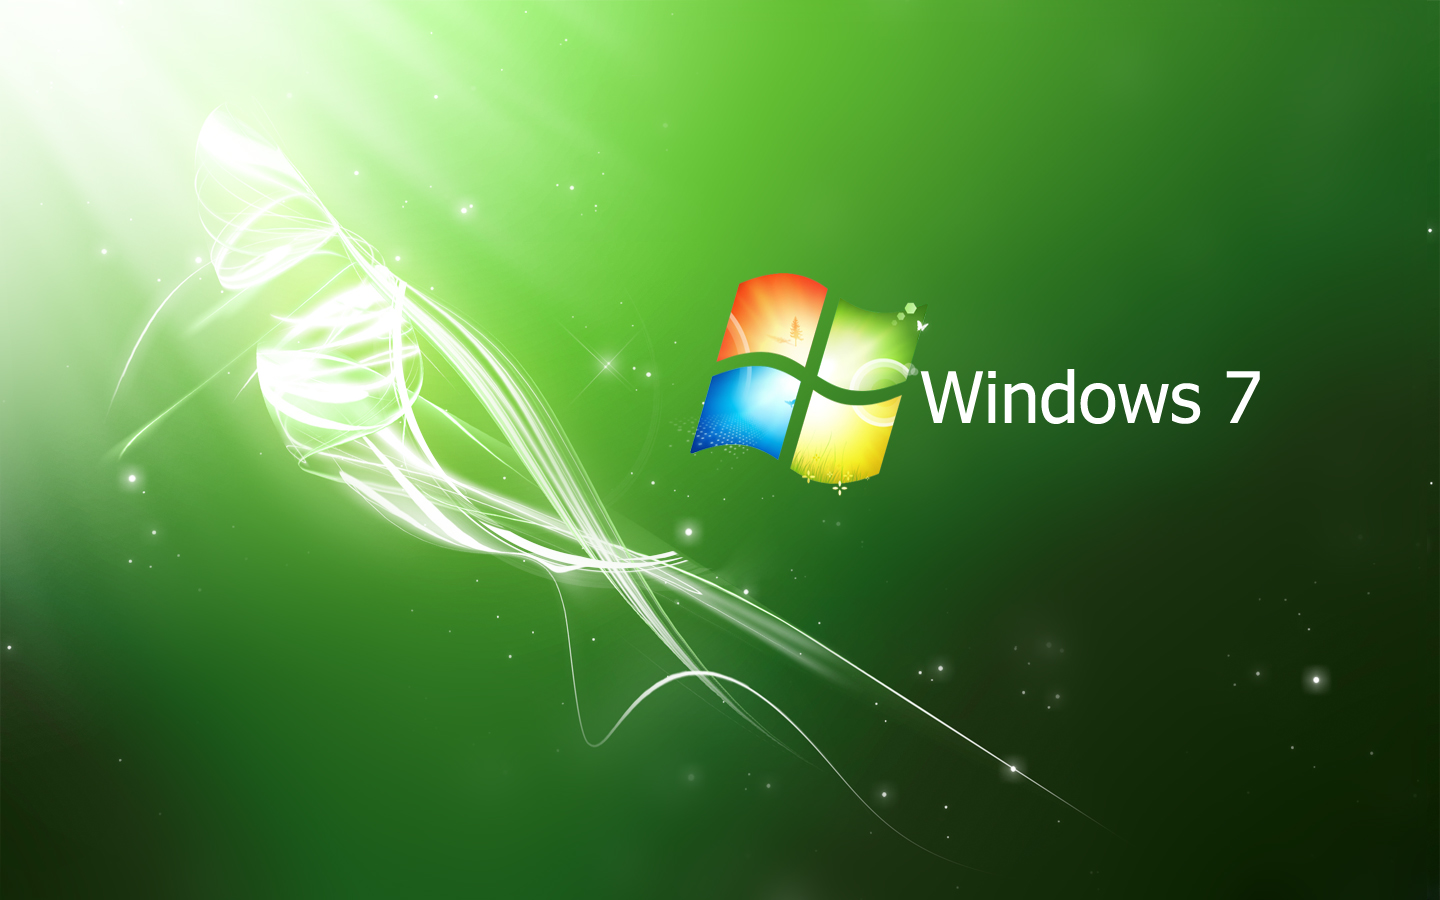 Windows 7 Wallpaper Pack HD